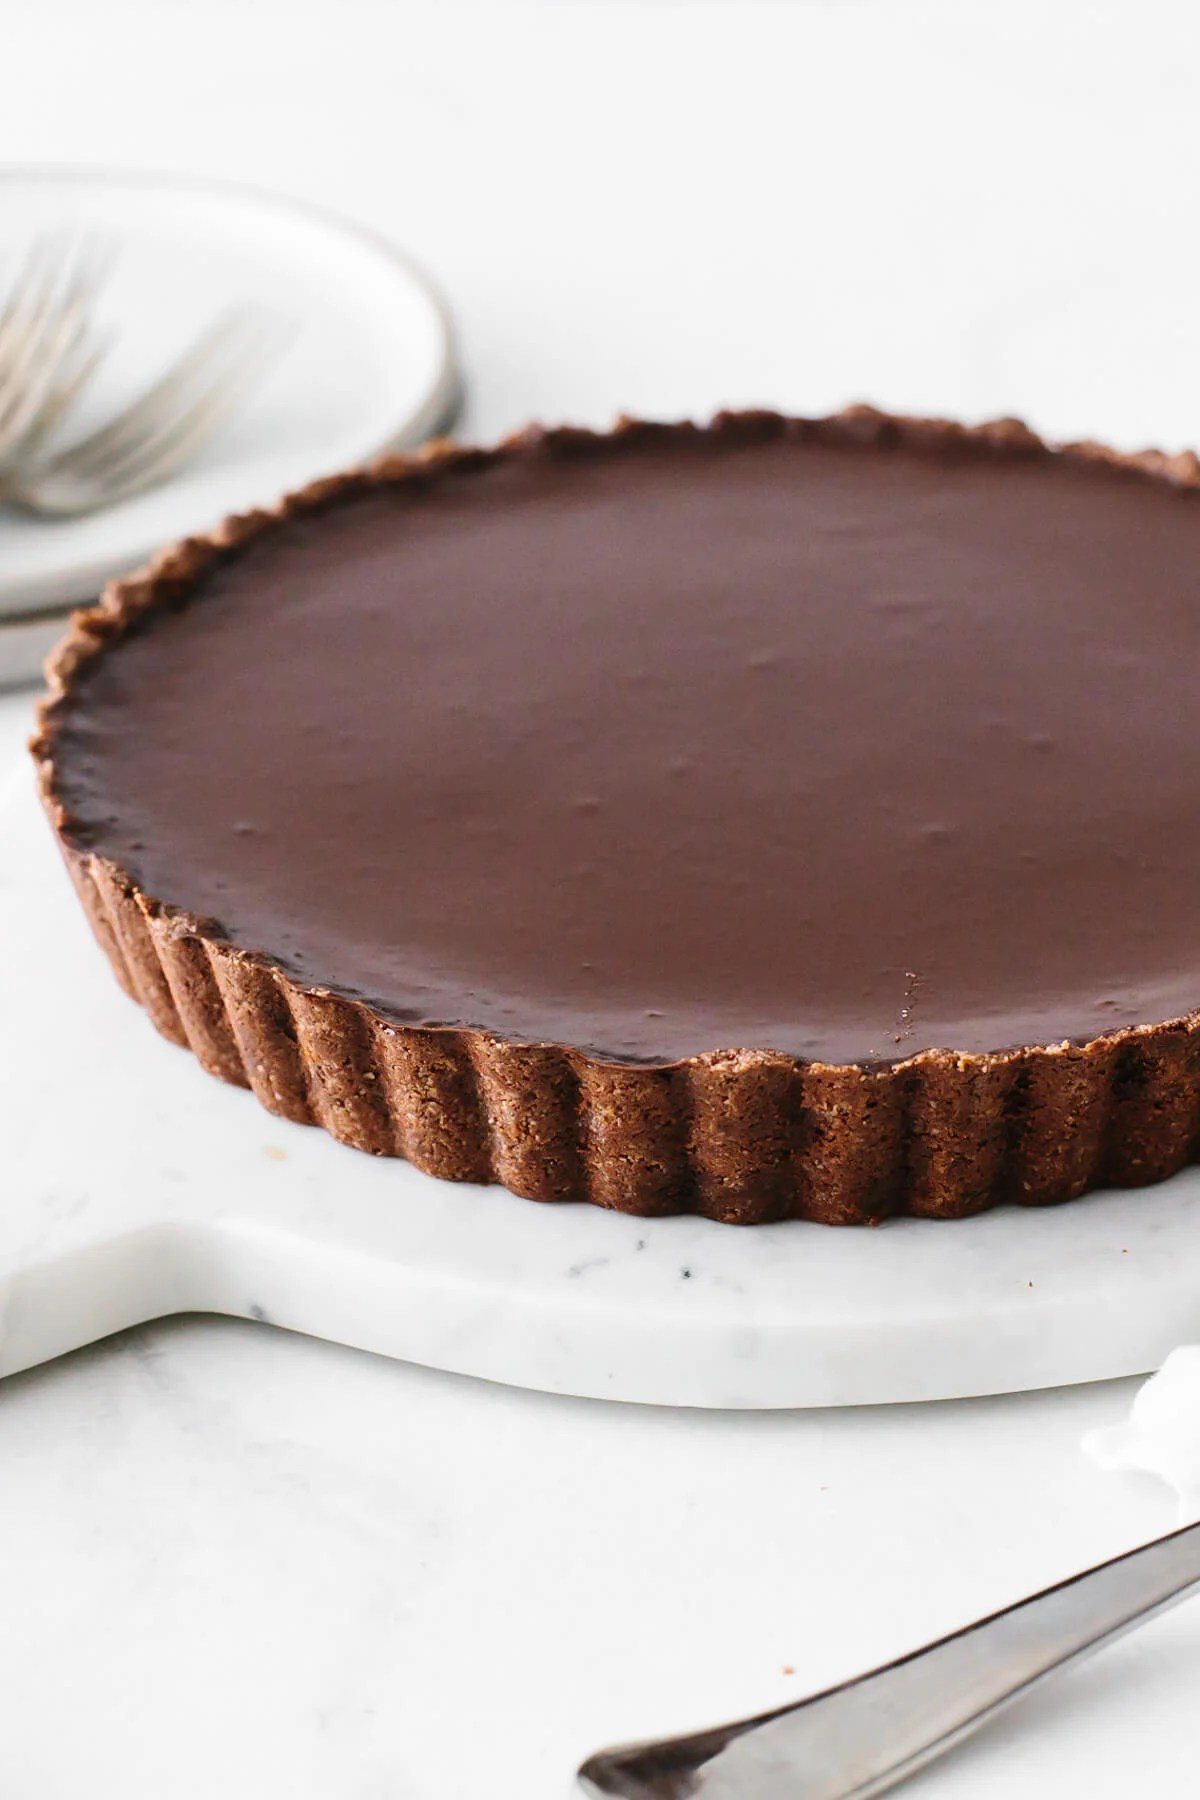 Chocolate tart recipe on a serving platter.